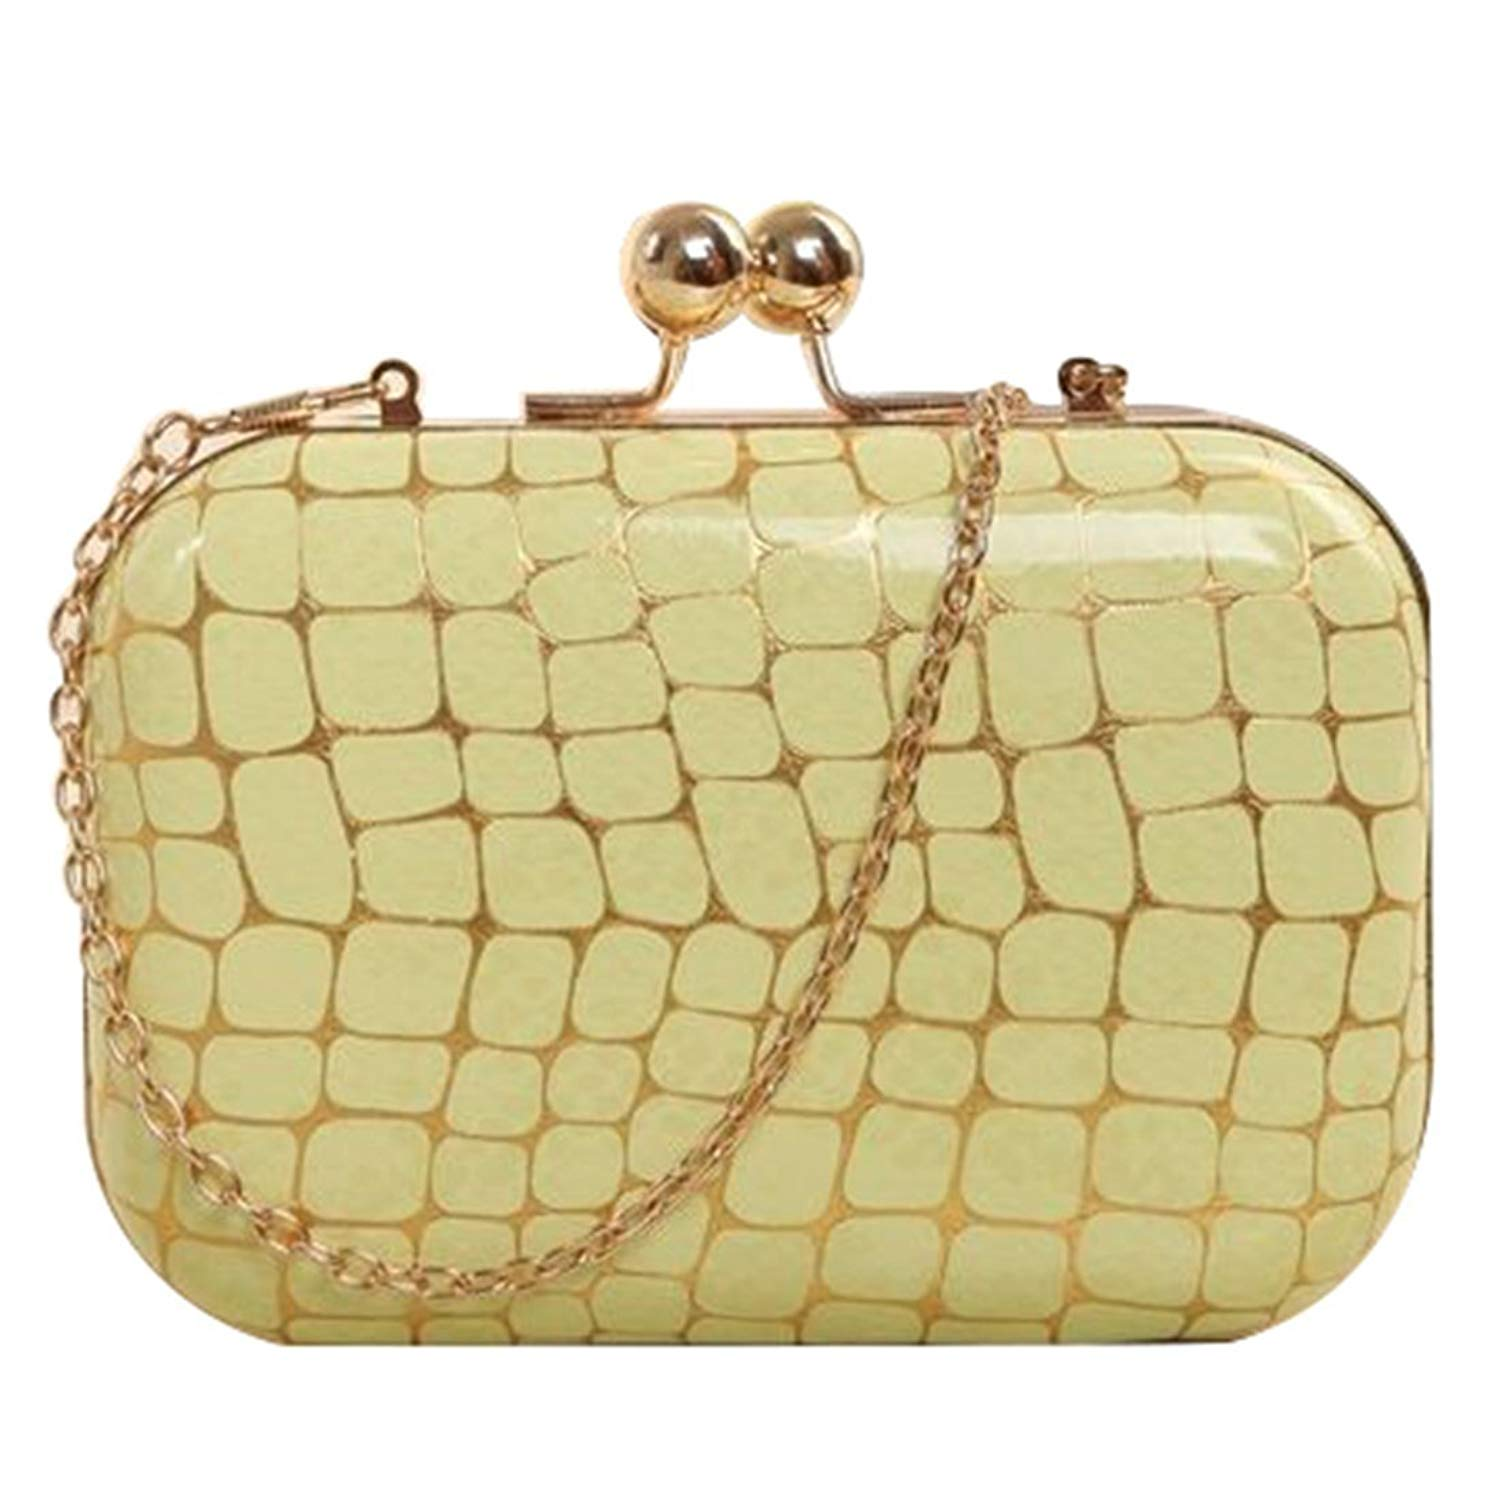 Retro Stone pattern Girls Shoulder Bag - TOOGOO(R)Retro Stone pattern PU leather Women's mini evening bag fashion clutch banquet bag girls shoulder bag Messenger bag, Green